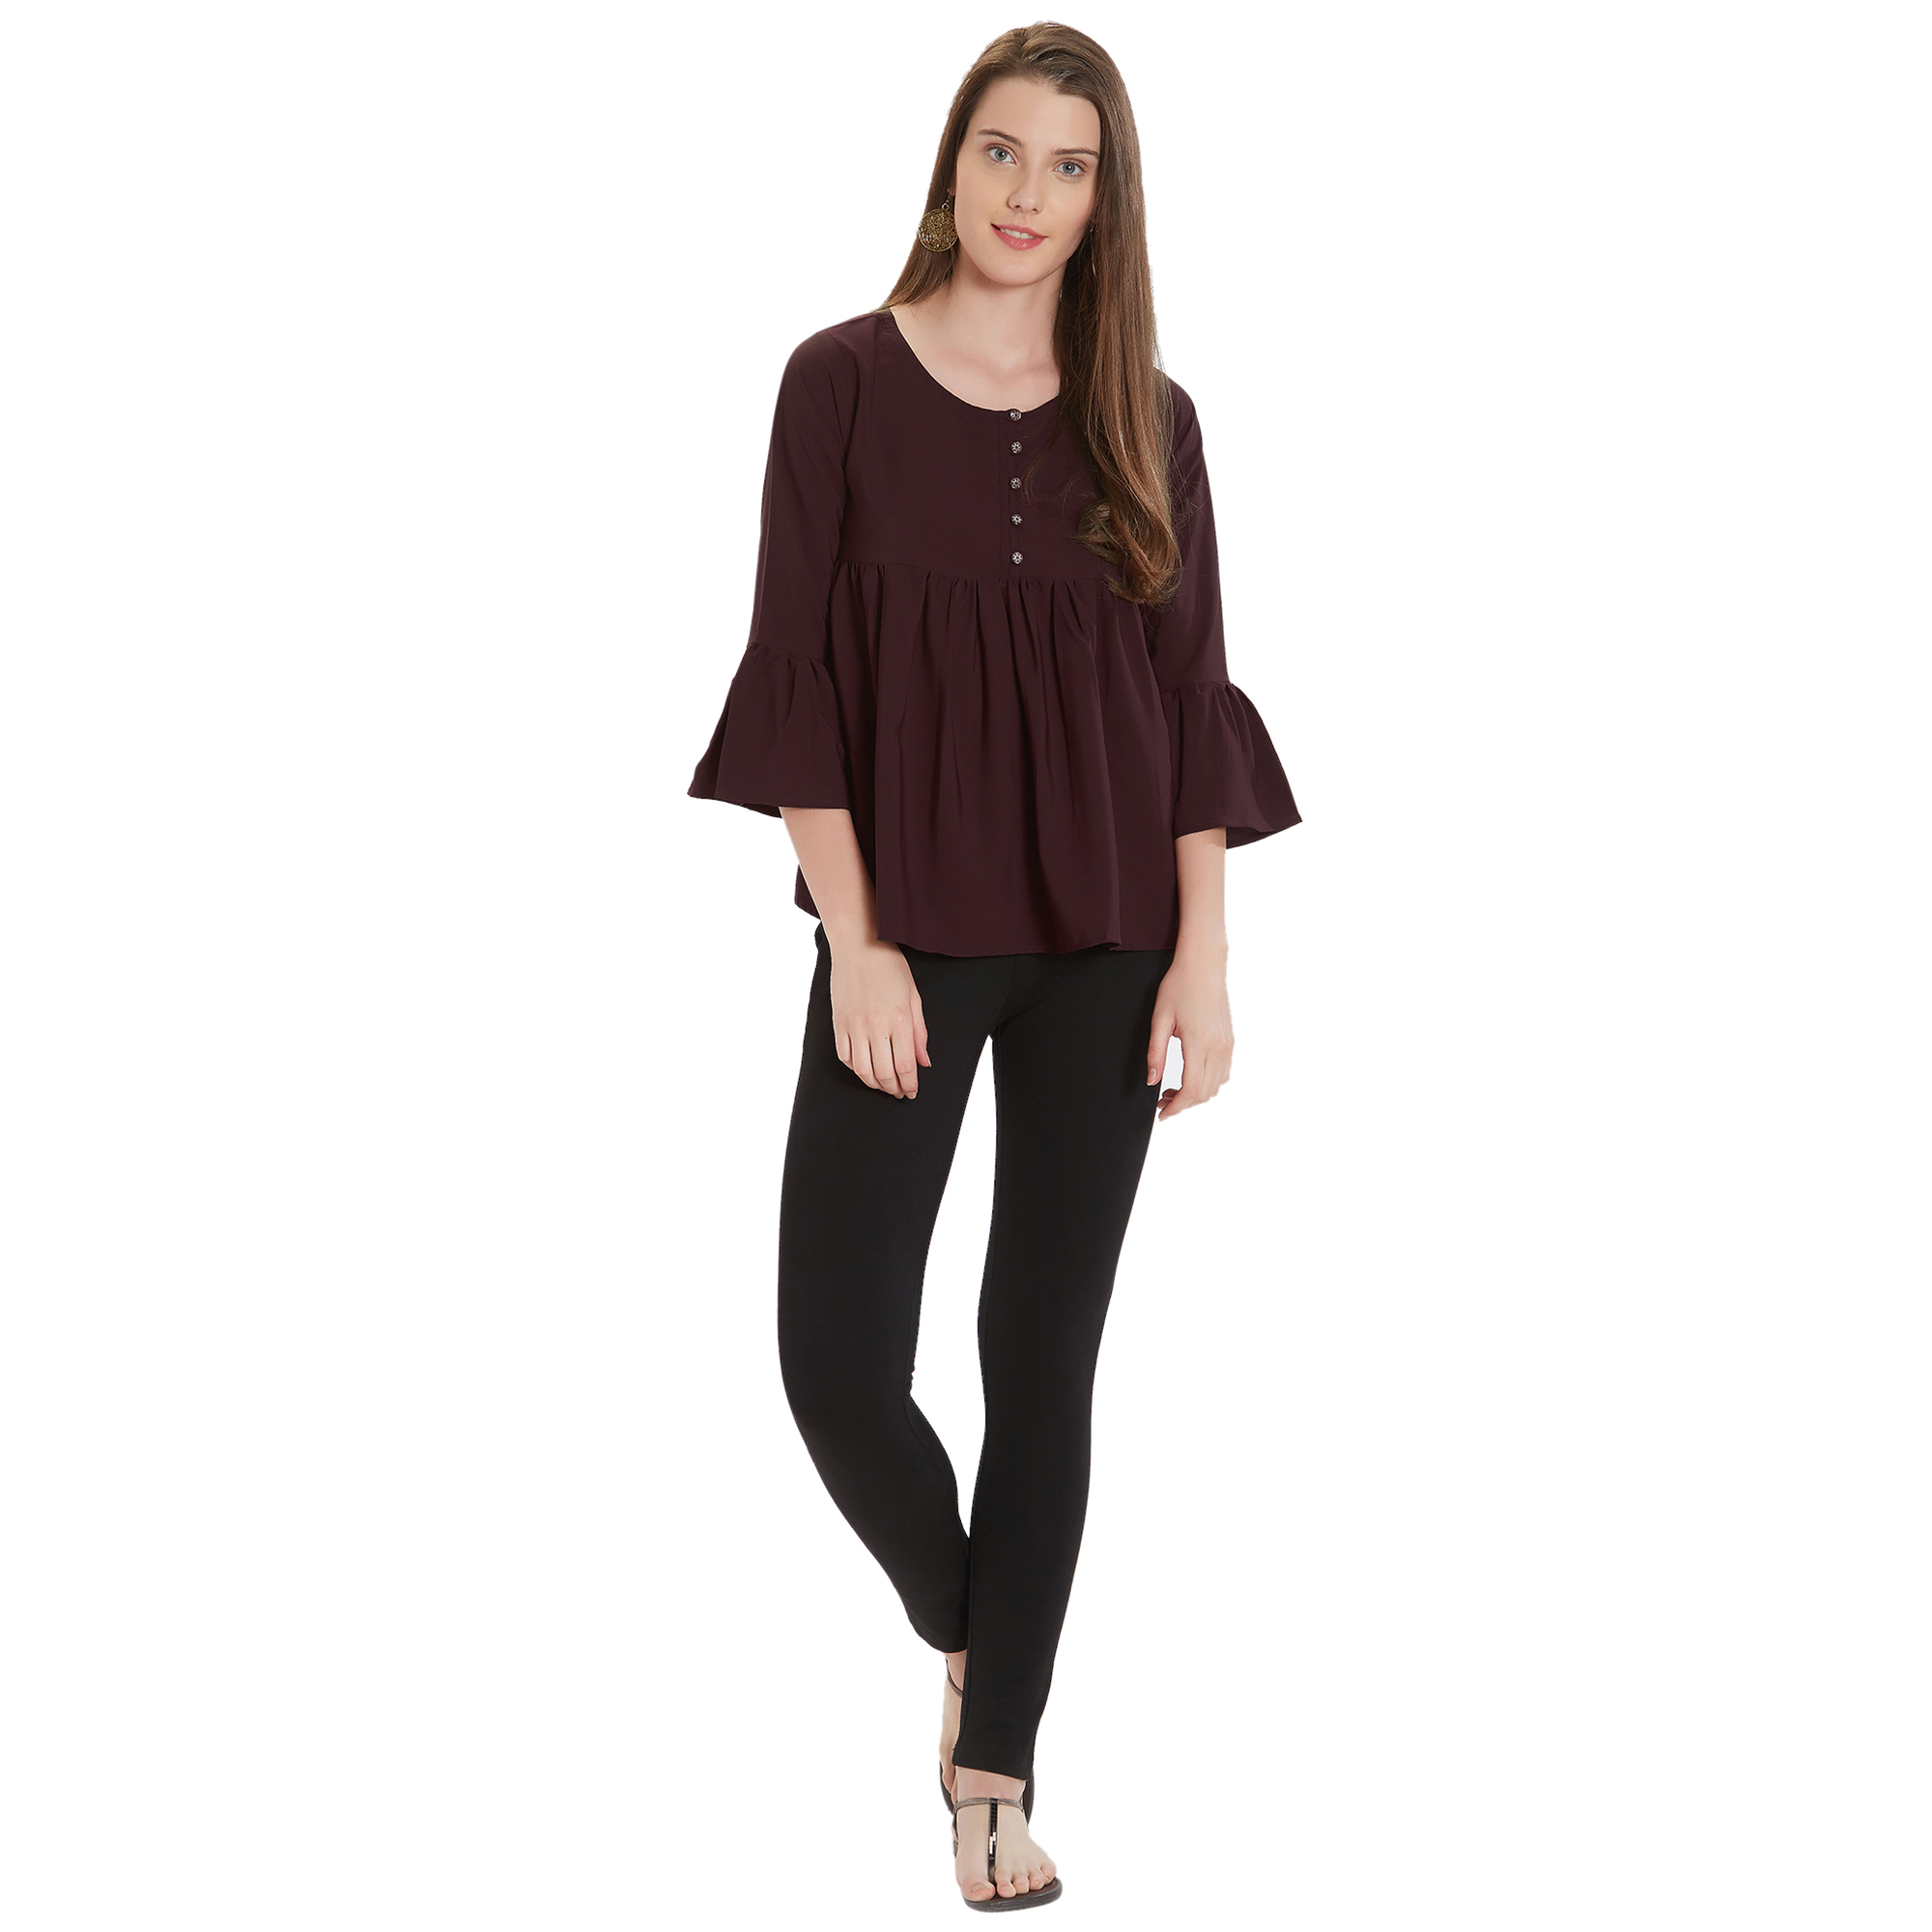 Adorable Brown Colored Casual Wear Crepe Top